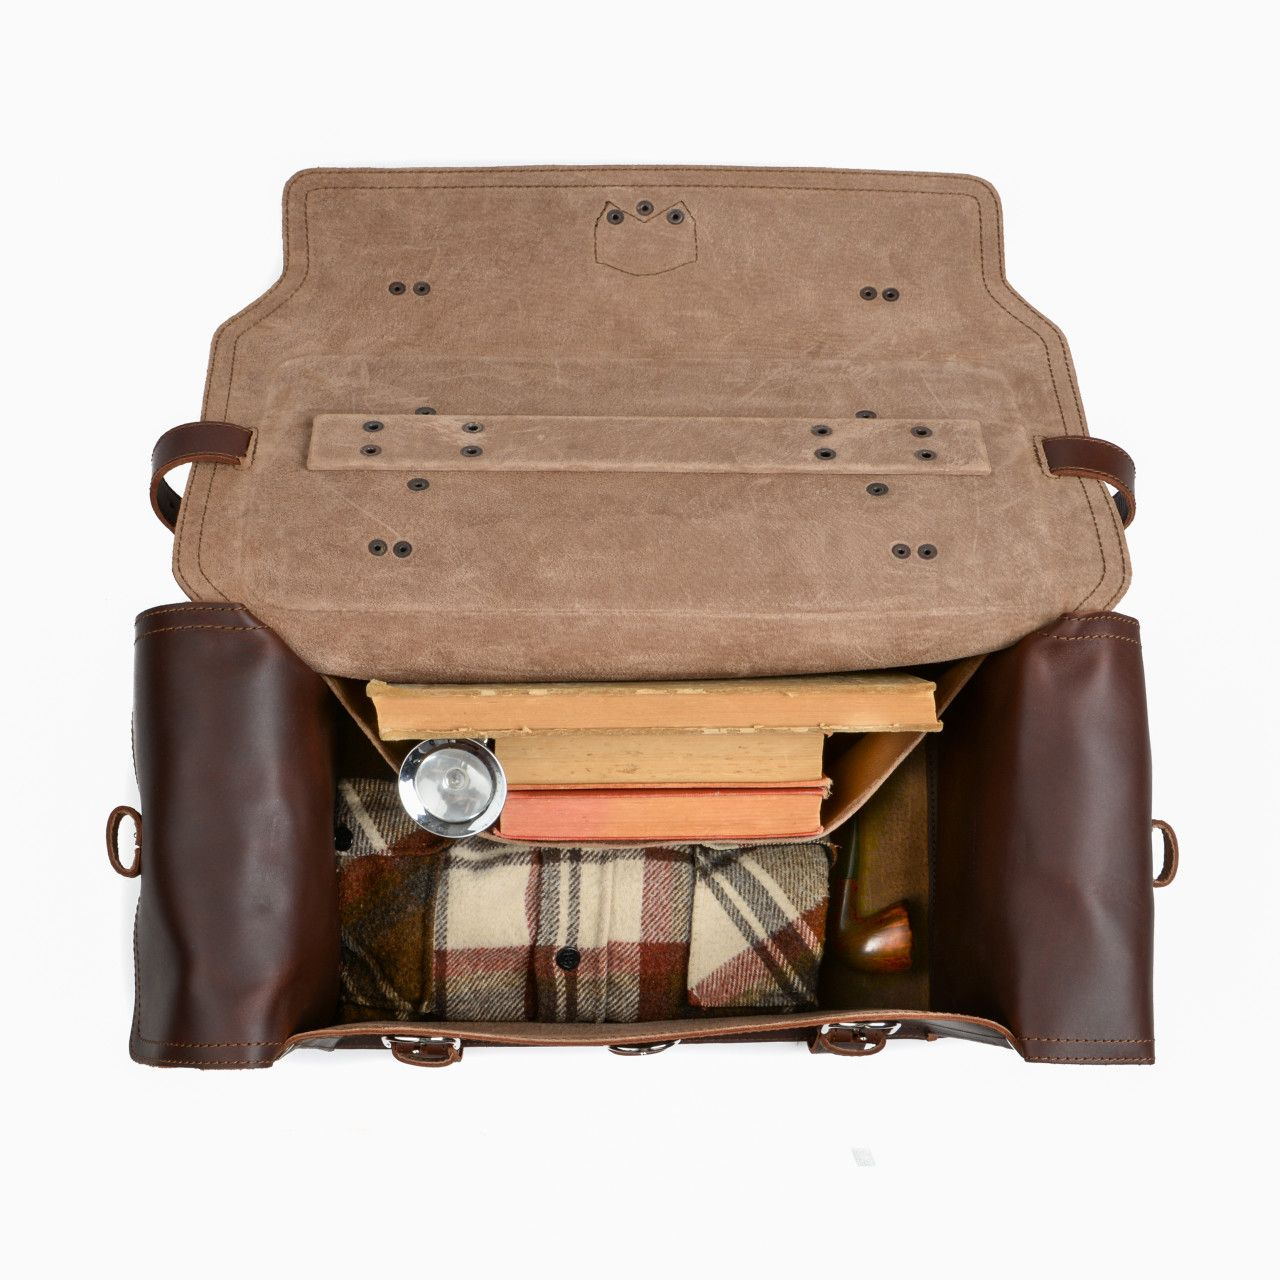 side pocket leather duffel bag large in chestnut leather with books, a shirt, a lashlight and a pipe in the interior